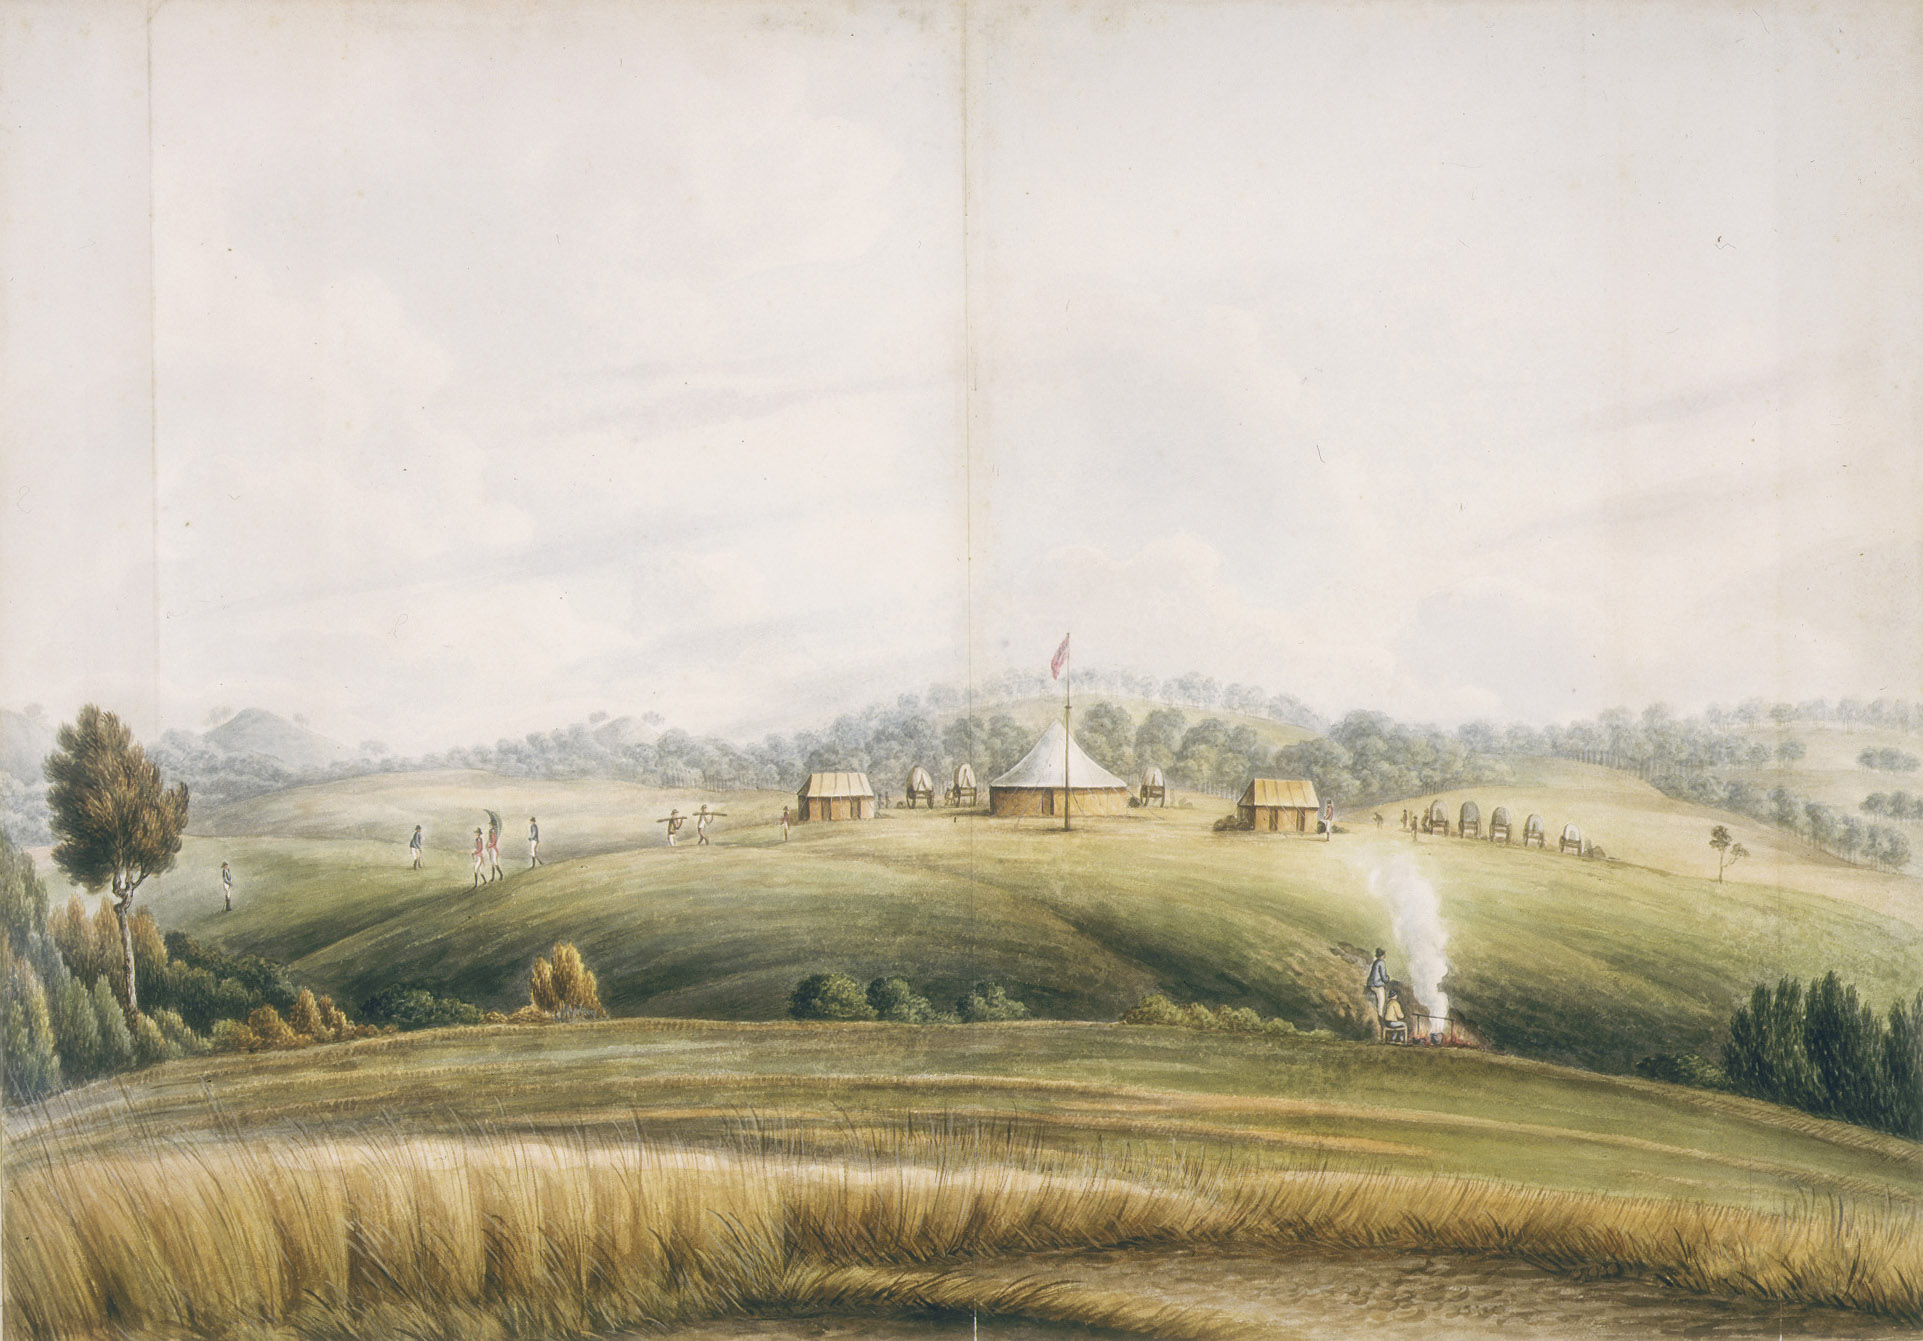 The Plains, Bathurst, by John Lewin, about 1815